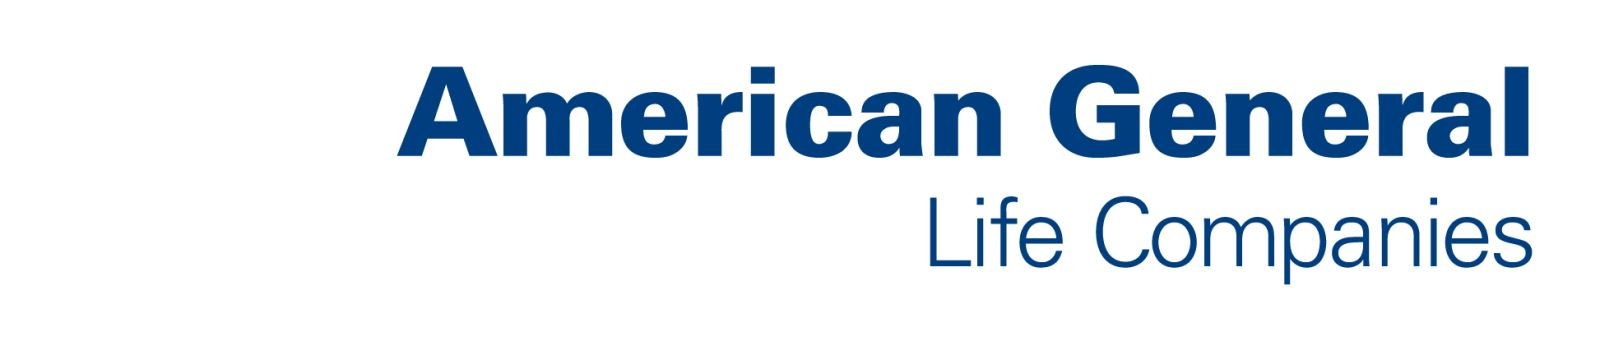 American General Named A Preferred Partner With Edward Jones Advisor Magazine